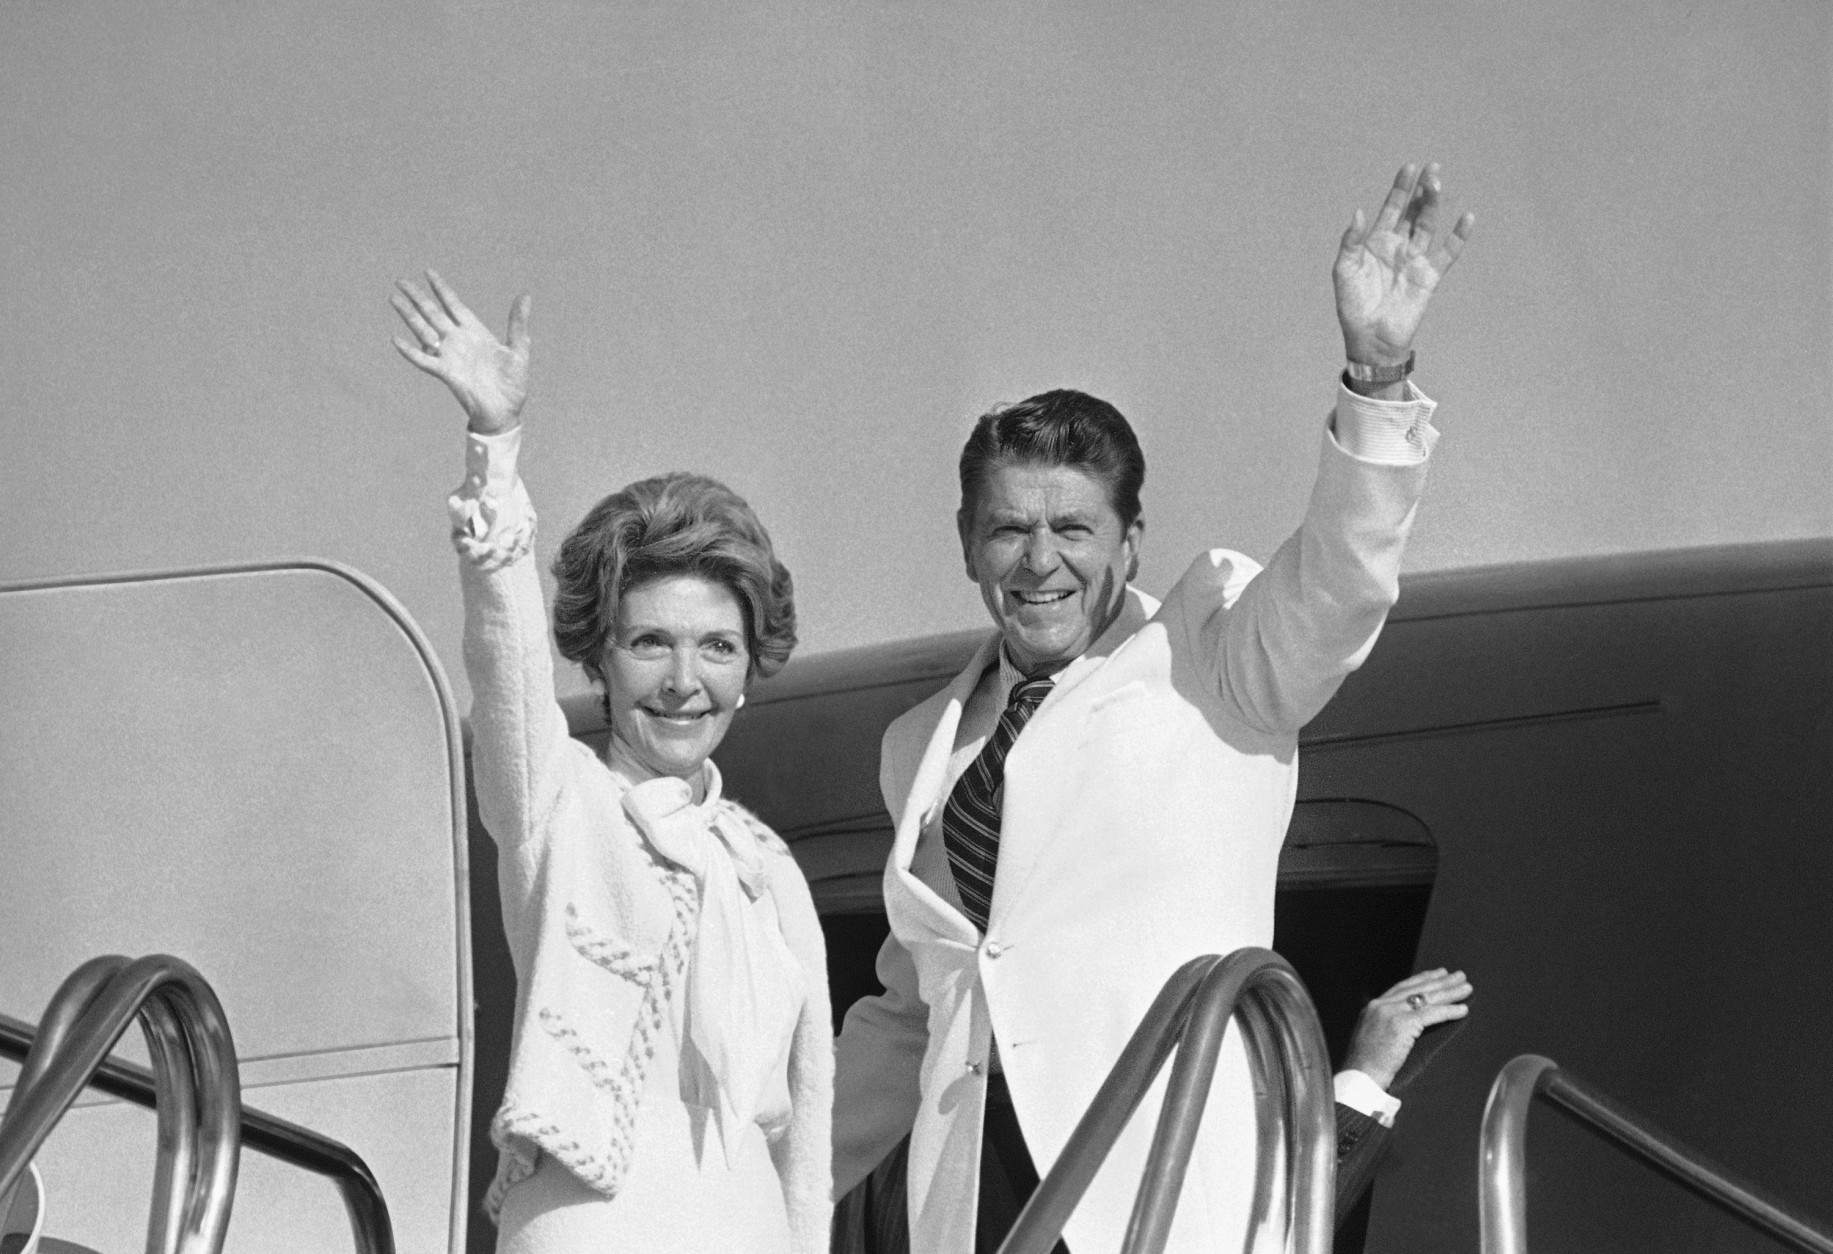 Former Gov. Ronald Reagan and his wife, Nancy, wave goodbye to crowd of newsmen Monday, July 14, 1980 in Los Angeles as he headed for the Republican National Convention in Detroit. In 1980, former California Gov. Ronald Reagan won the Republican presidential nomination at the party's convention in Detroit. He won the Republican presidential nomination at the party's convention in Detroit on July 16, 1980. (AP Photo/Wally Fong)